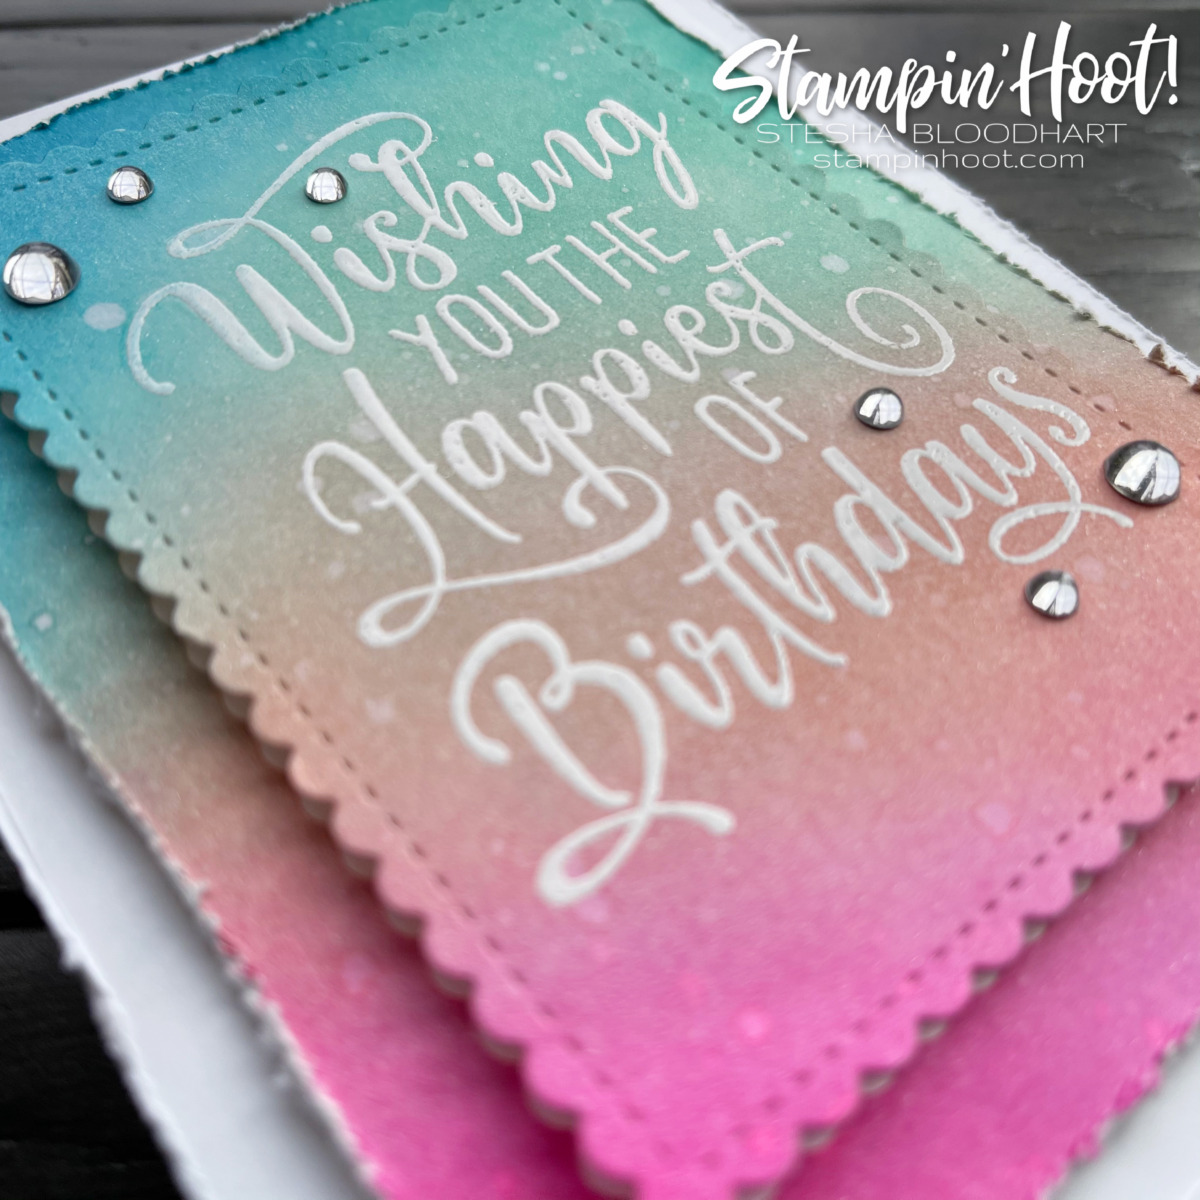 Create this card using the Happiest of Birthdays Stamp Set. Card by Stesha Bloodhart, Stampin' Hoot! Slant 2